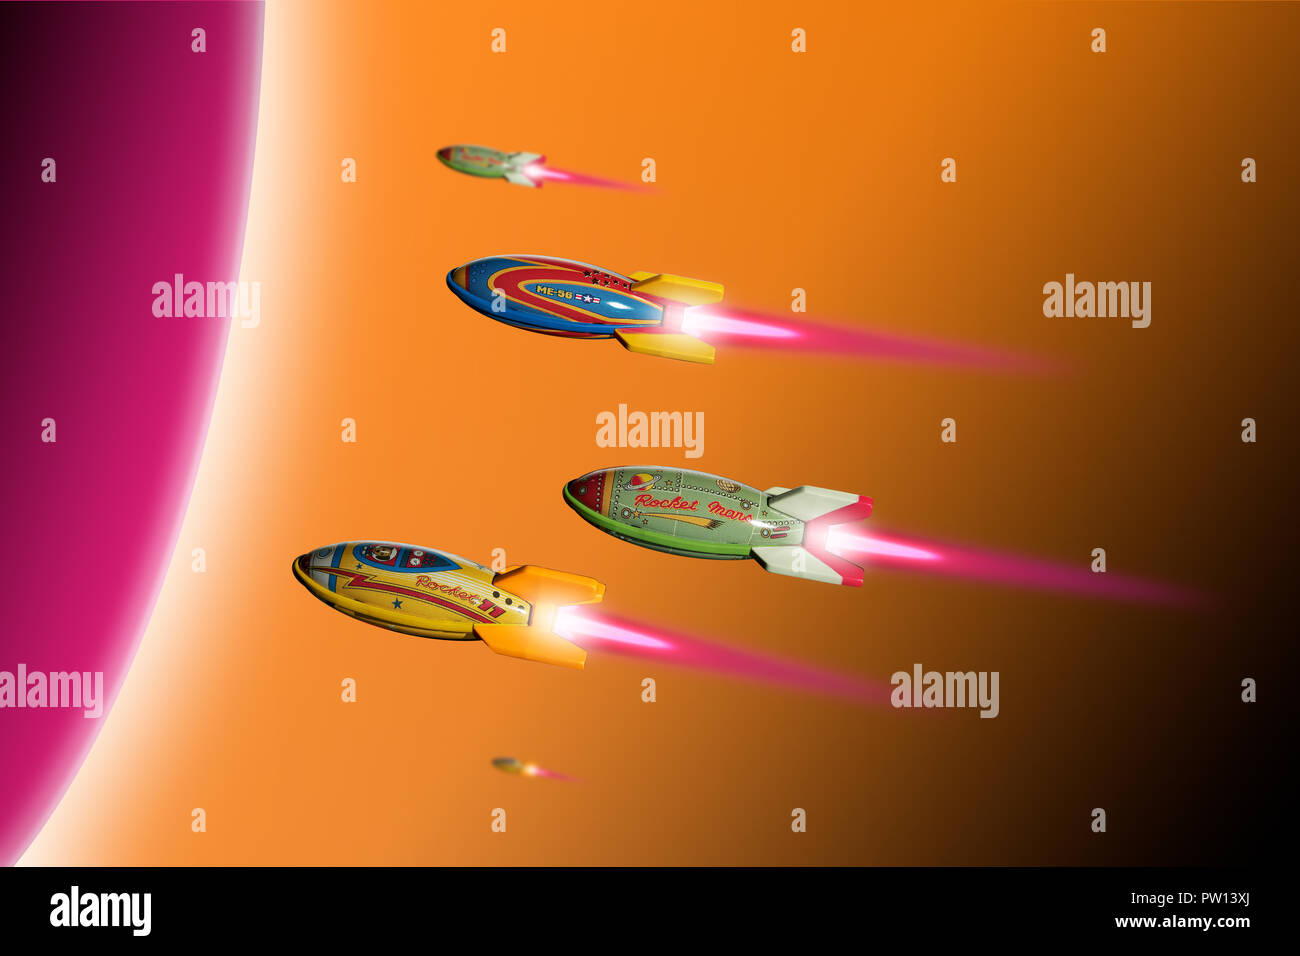 Concept A Group of Colorful Toy Rockets going toward a Round Planet, Space Travel, Interstellar - Stock Image